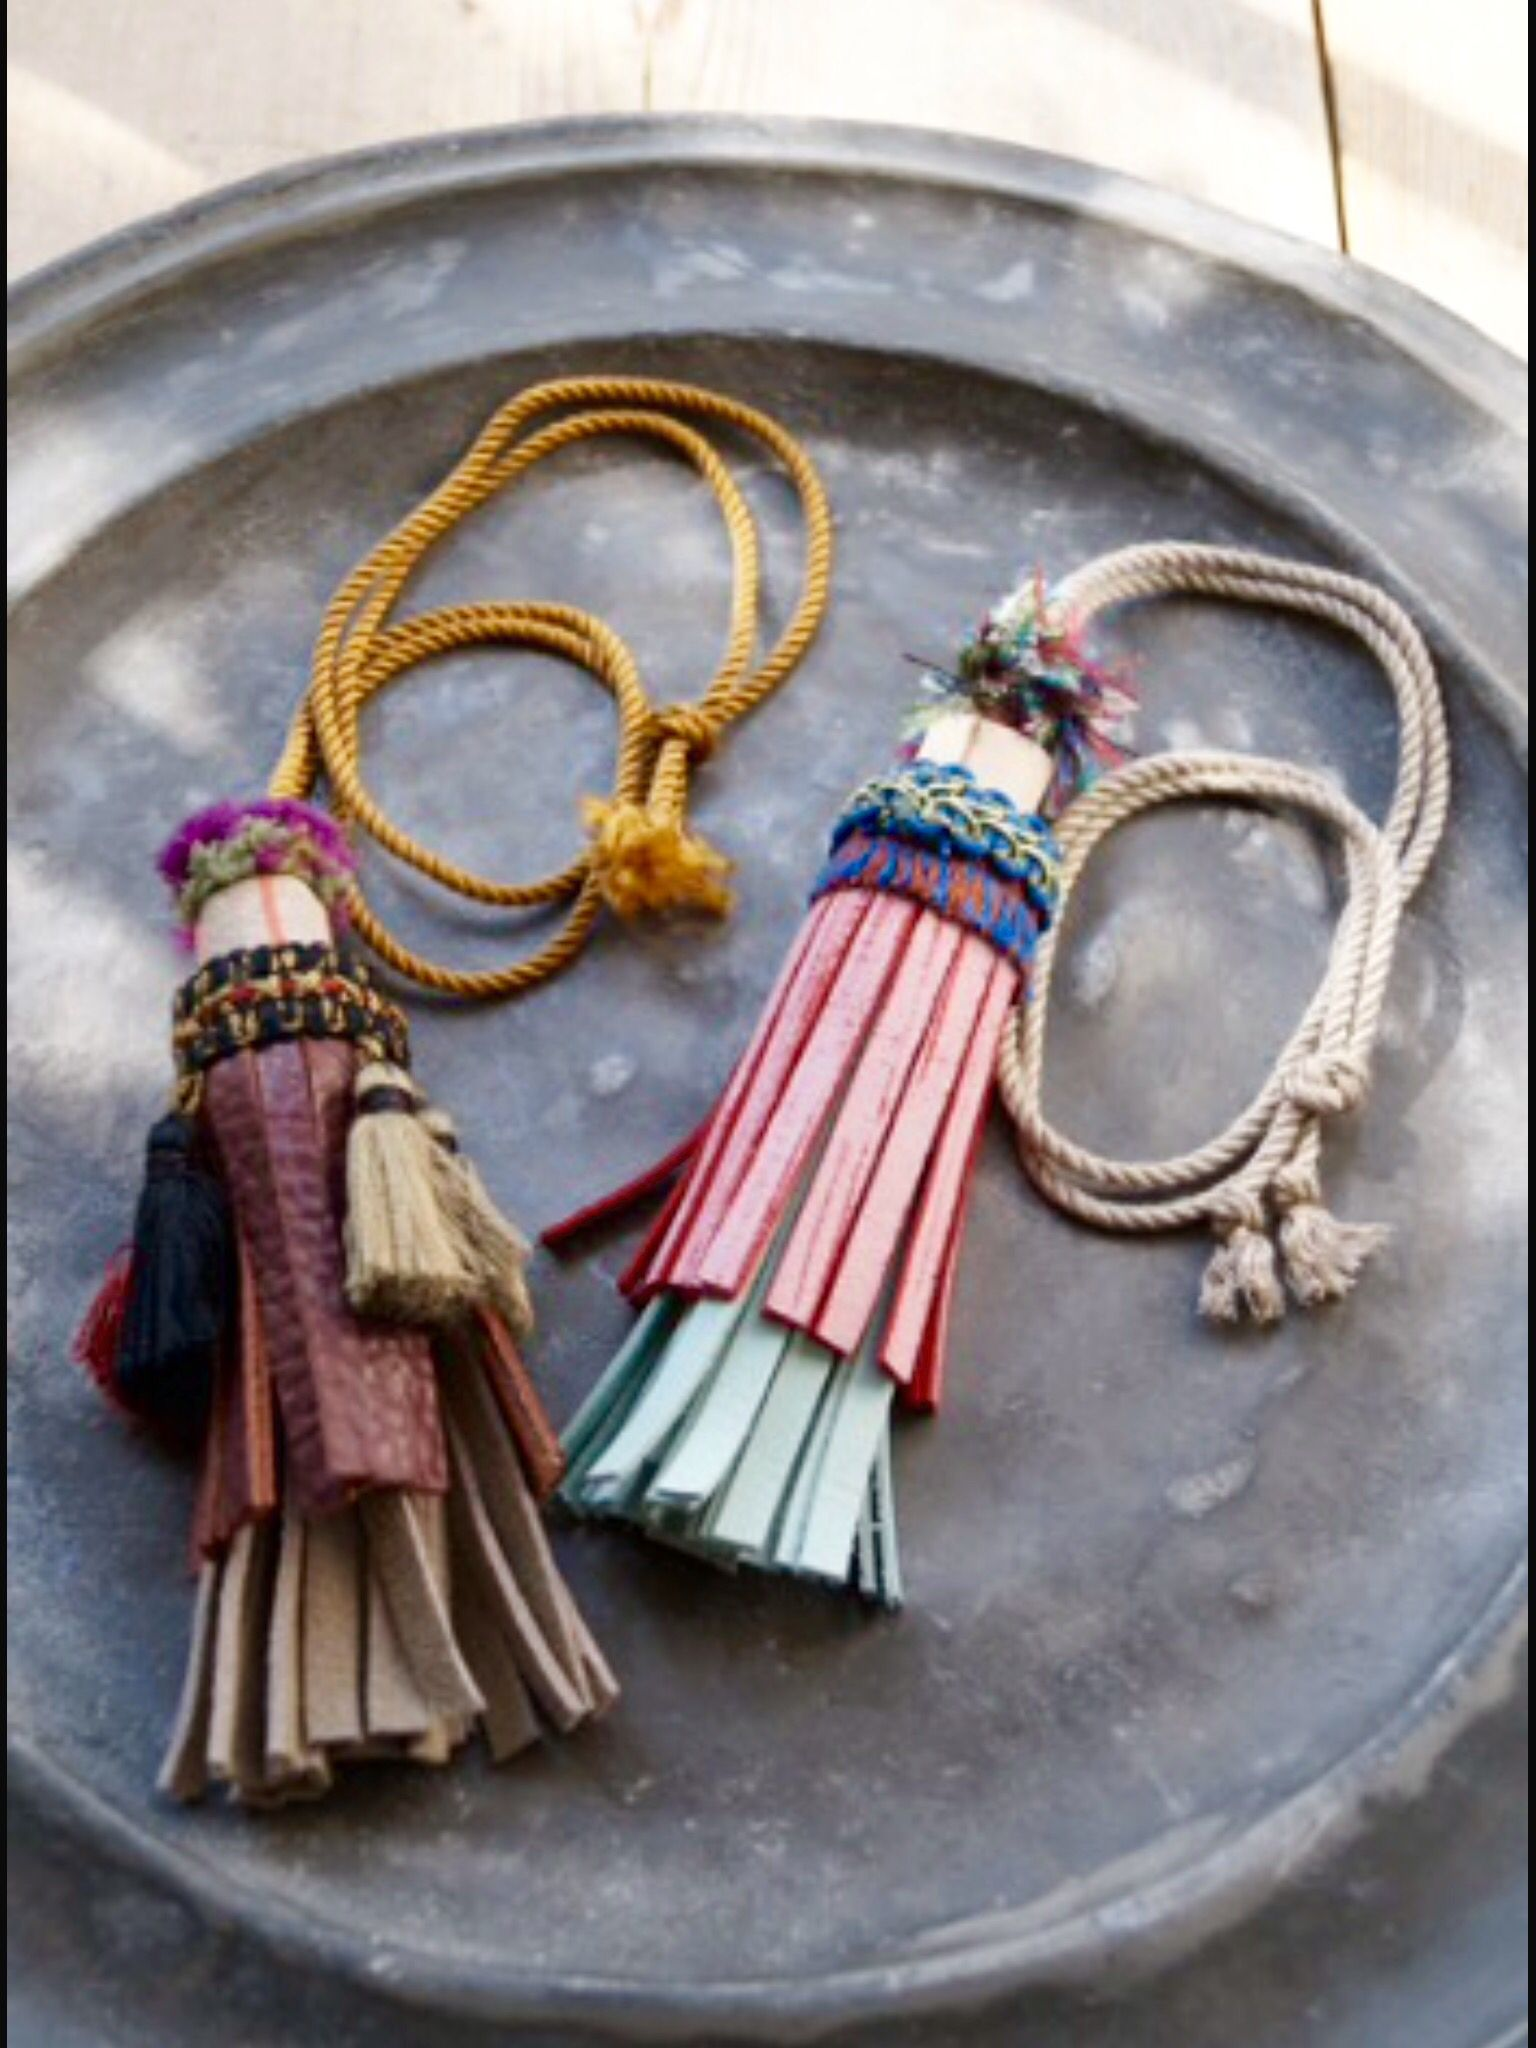 Pin by Marco Ramos on Accessories | Pinterest | Tassels, Keychains ...